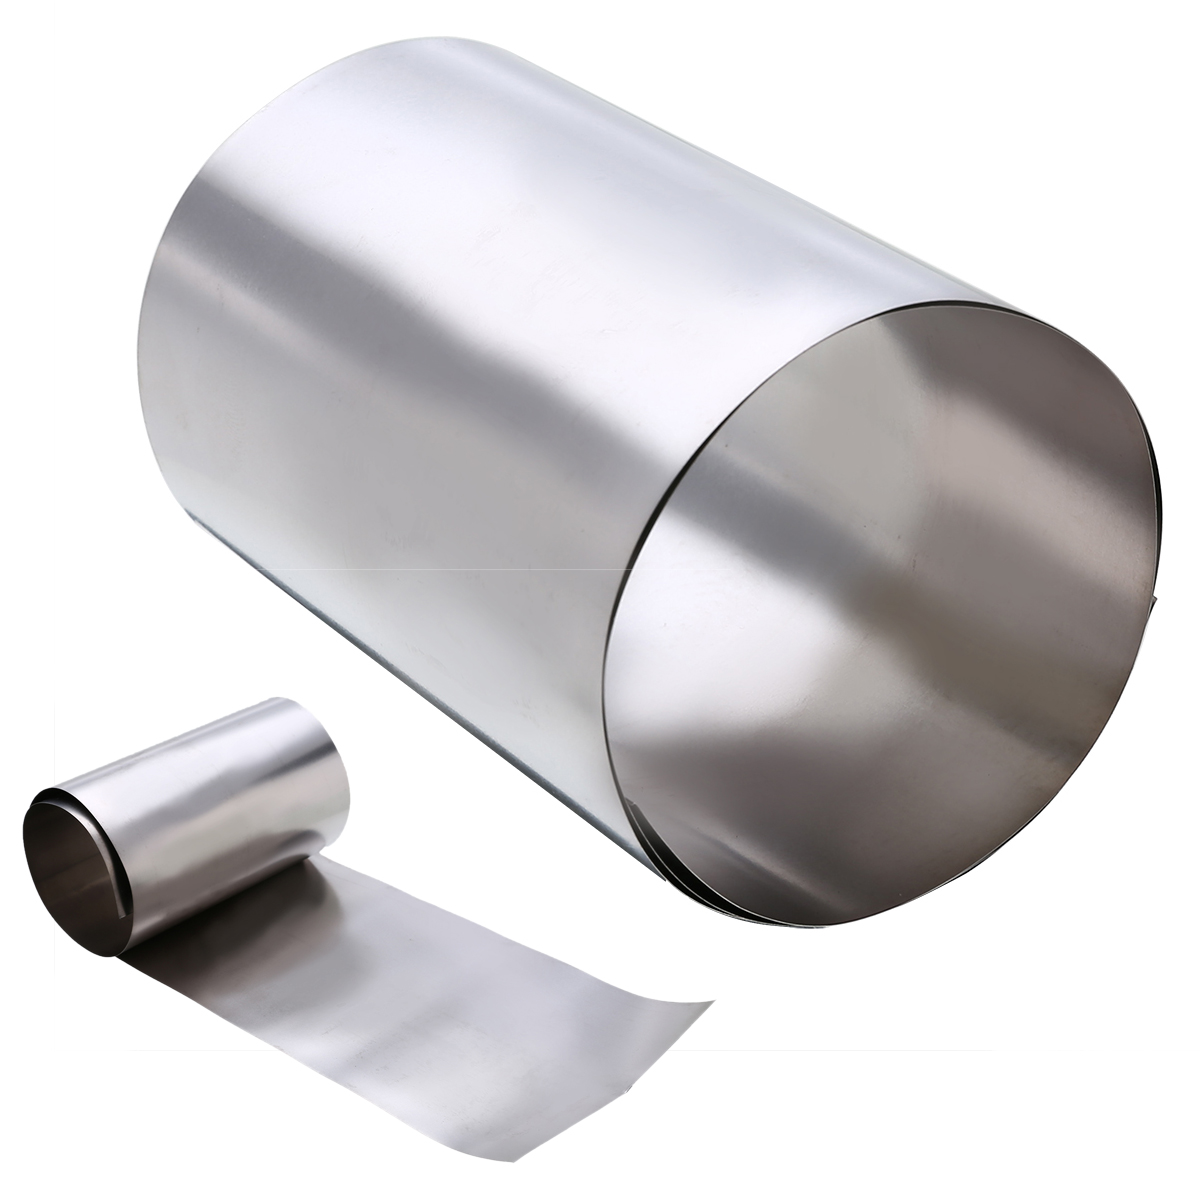 Mayitr 1pc Thin Ti Gr2 Titanium Plate Sheet Silver Metal Square Foil Craft 0.1*100*500mm With Corrosion Resistance